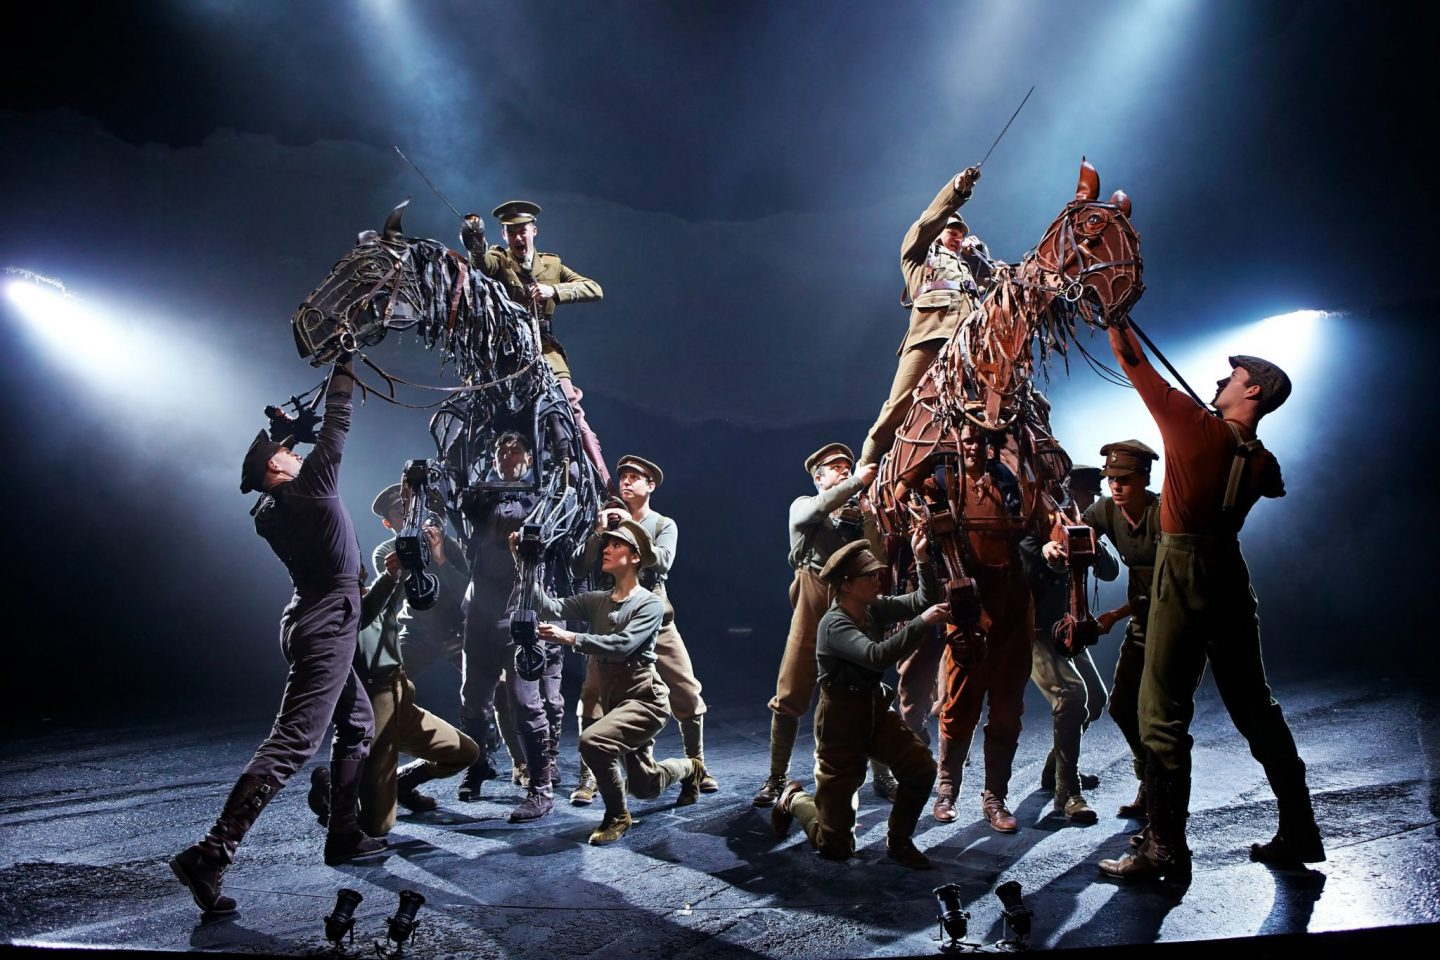 War Horse at the New London Theatre Photo by Brinkhoff Mögenburg 852-260